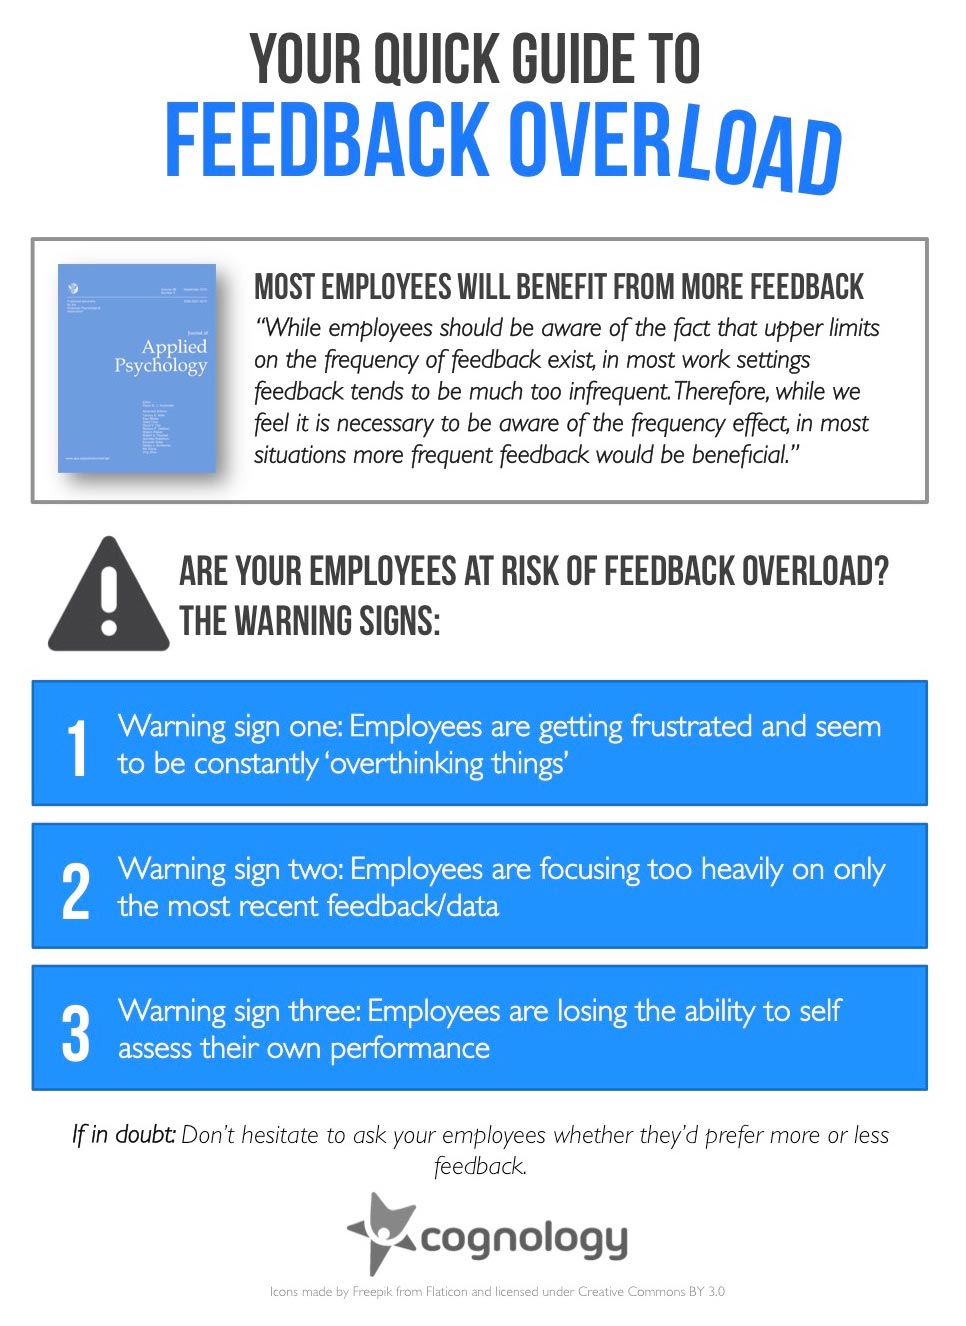 Most employees will benefit from more feedback